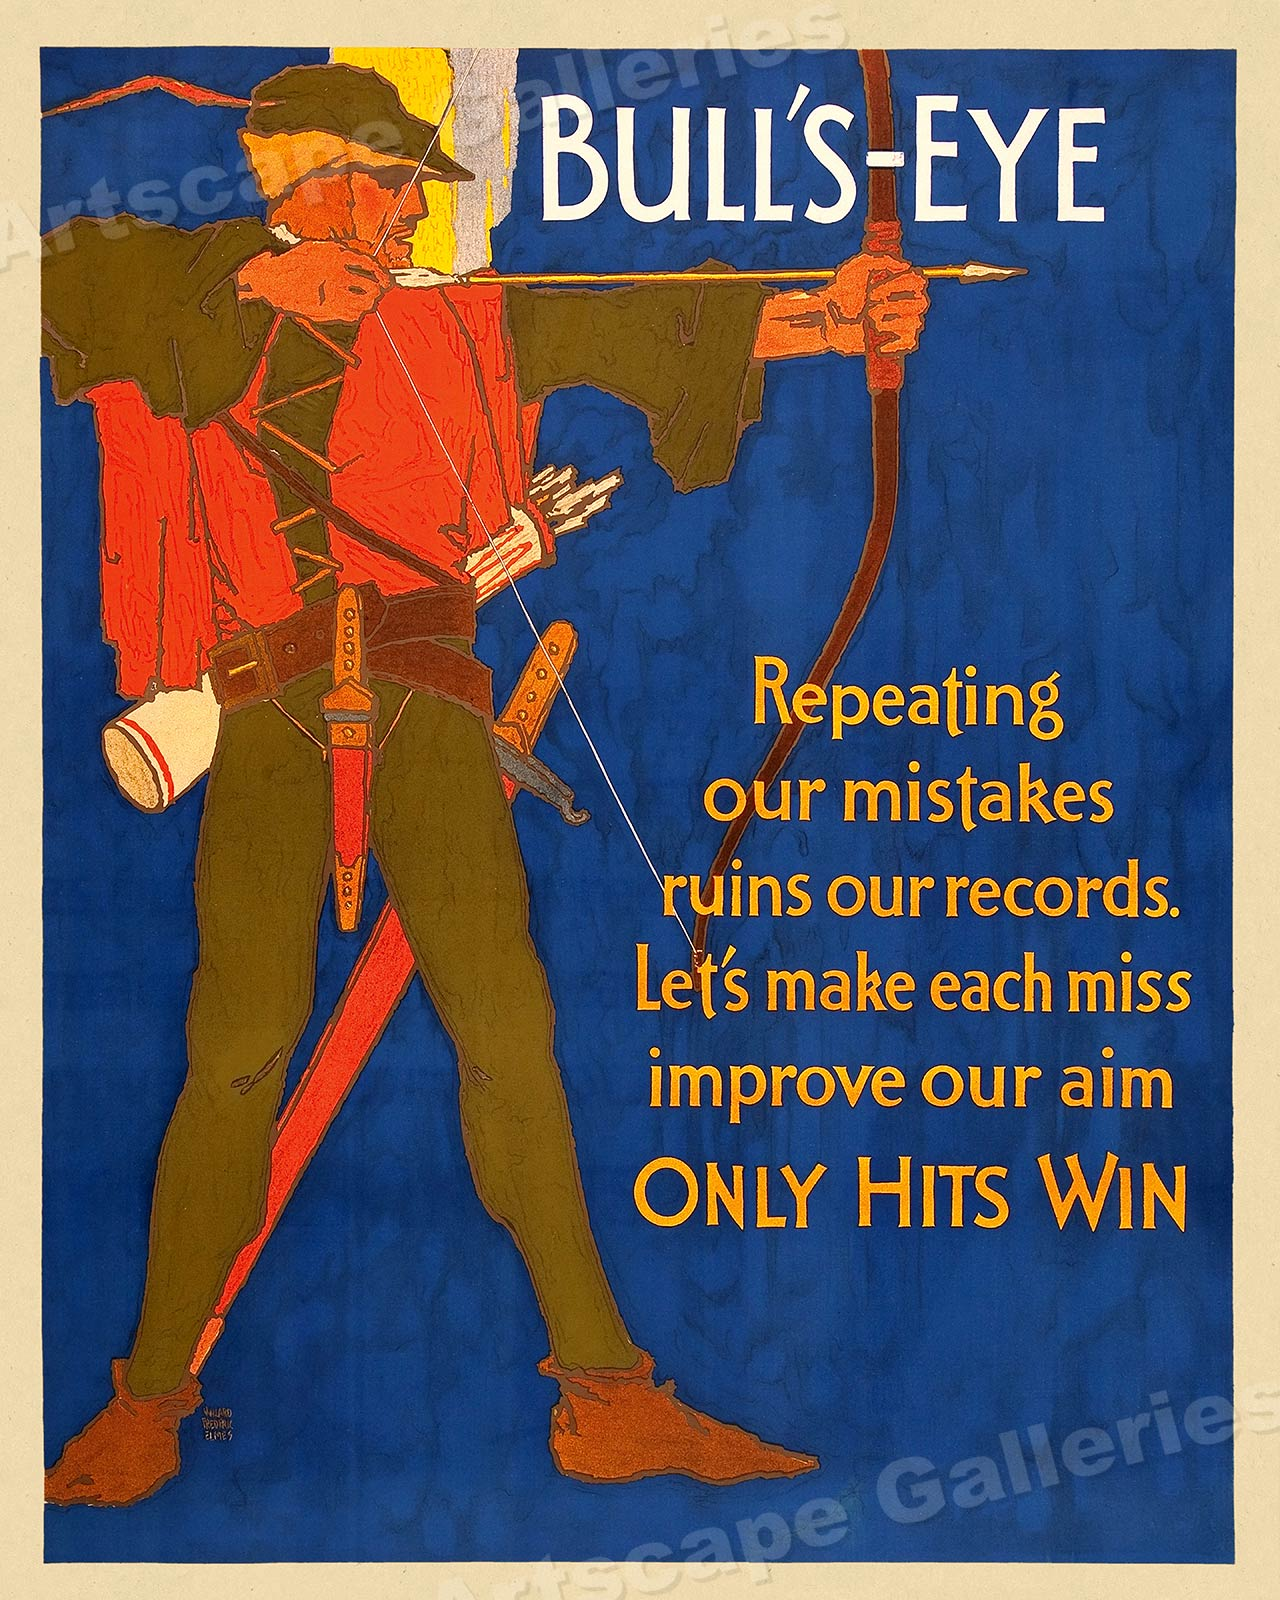 Only Hits Win! 1920s Work Incentive Motivational Poster Bullseye 24x30